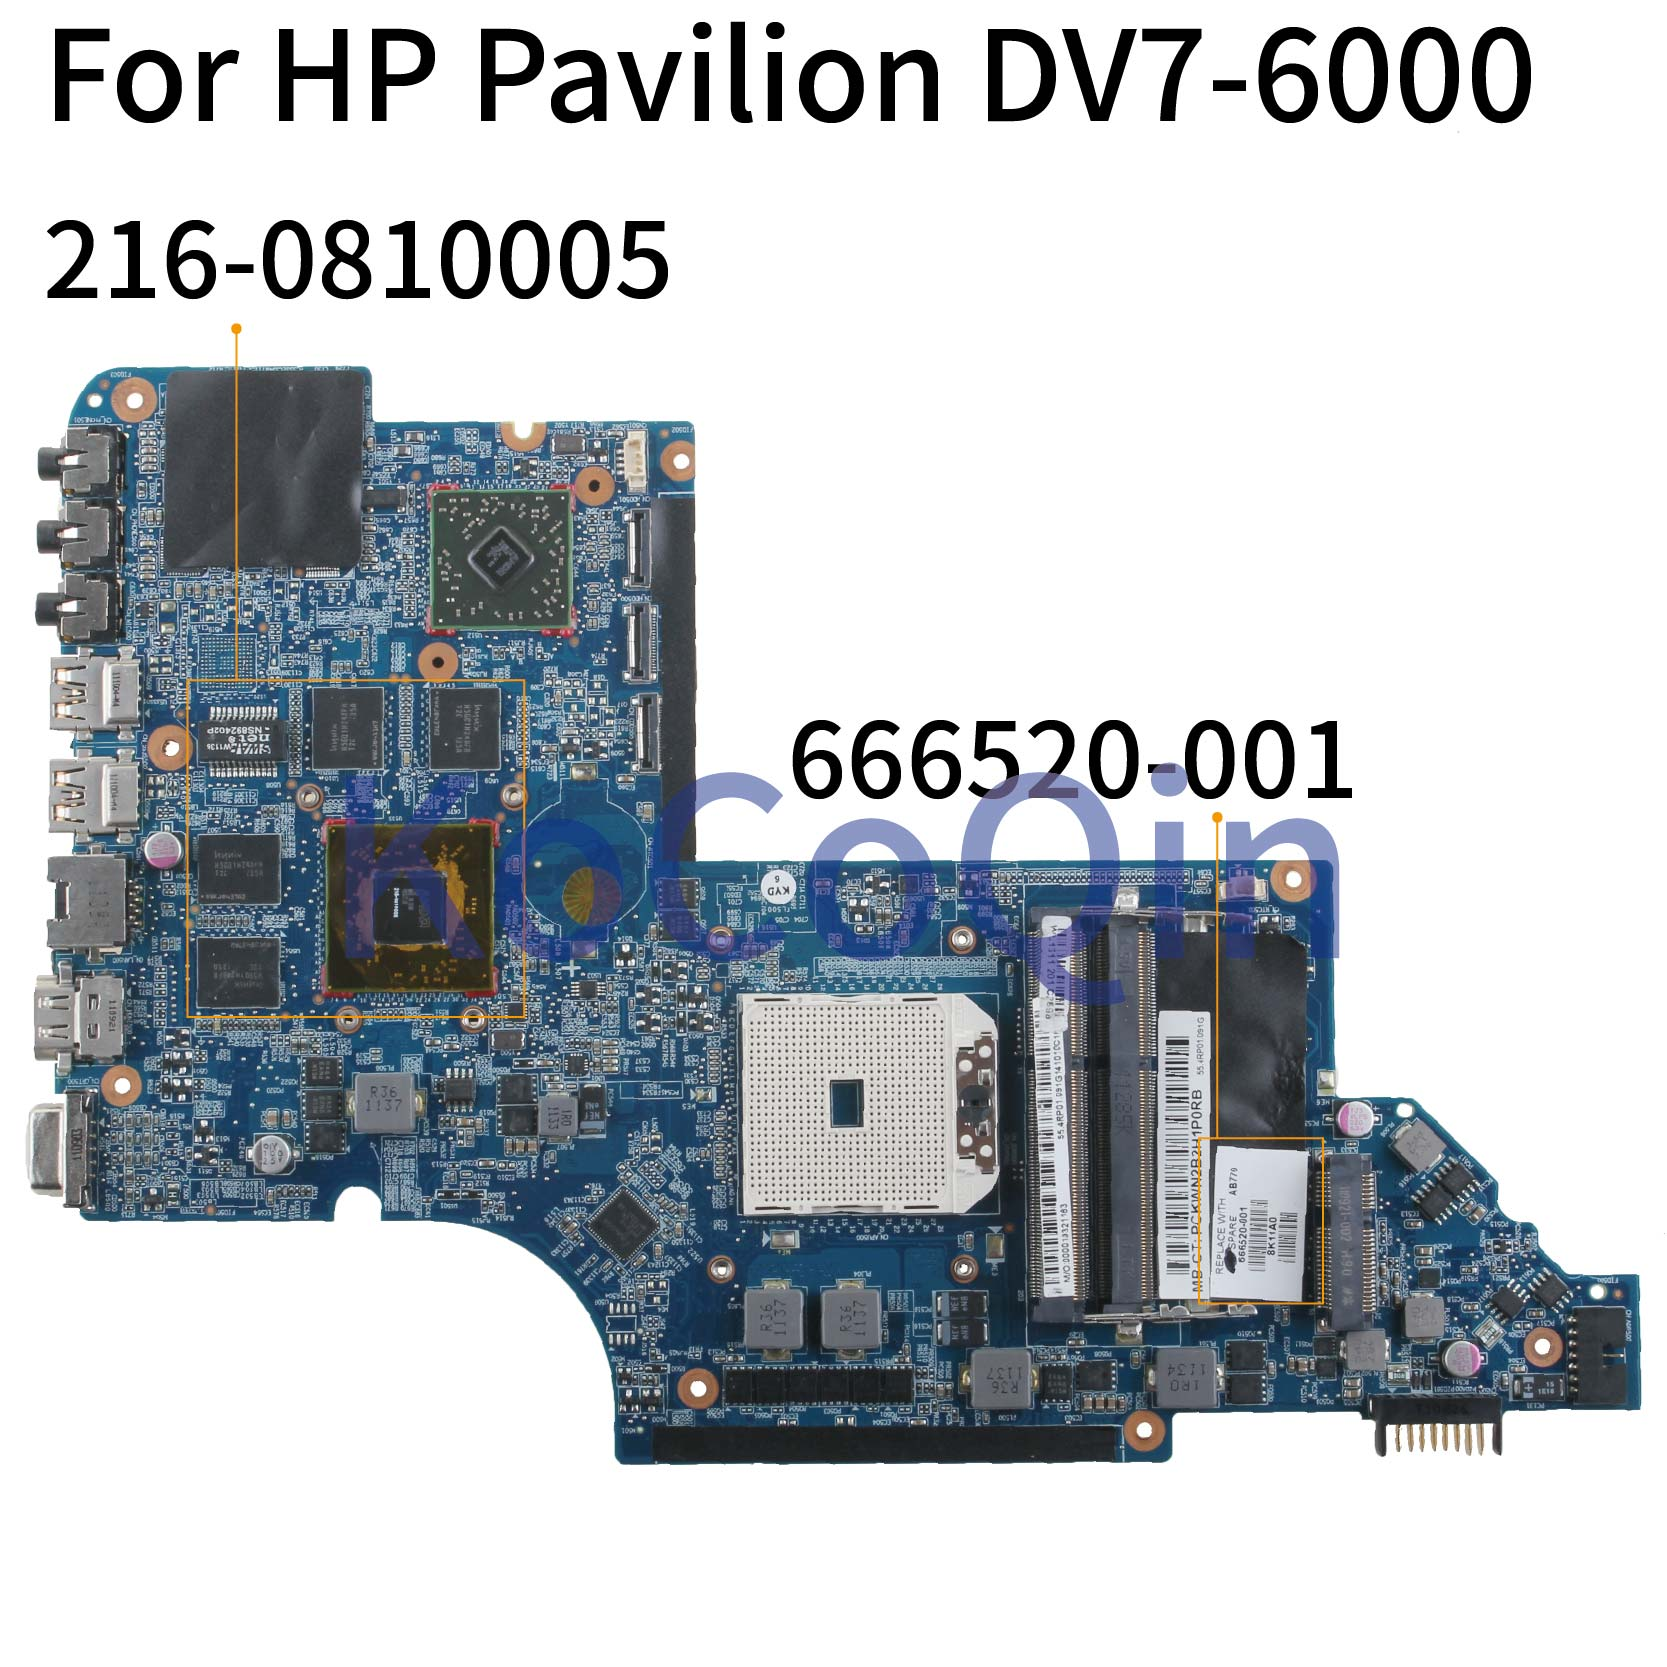 KoCoQin Laptop Motherboard For HP Pavilion DV7 DV7-6000 DV7Z-6100 A70M HD6750 Mainboard 666520-001 666520-501 216-0810005